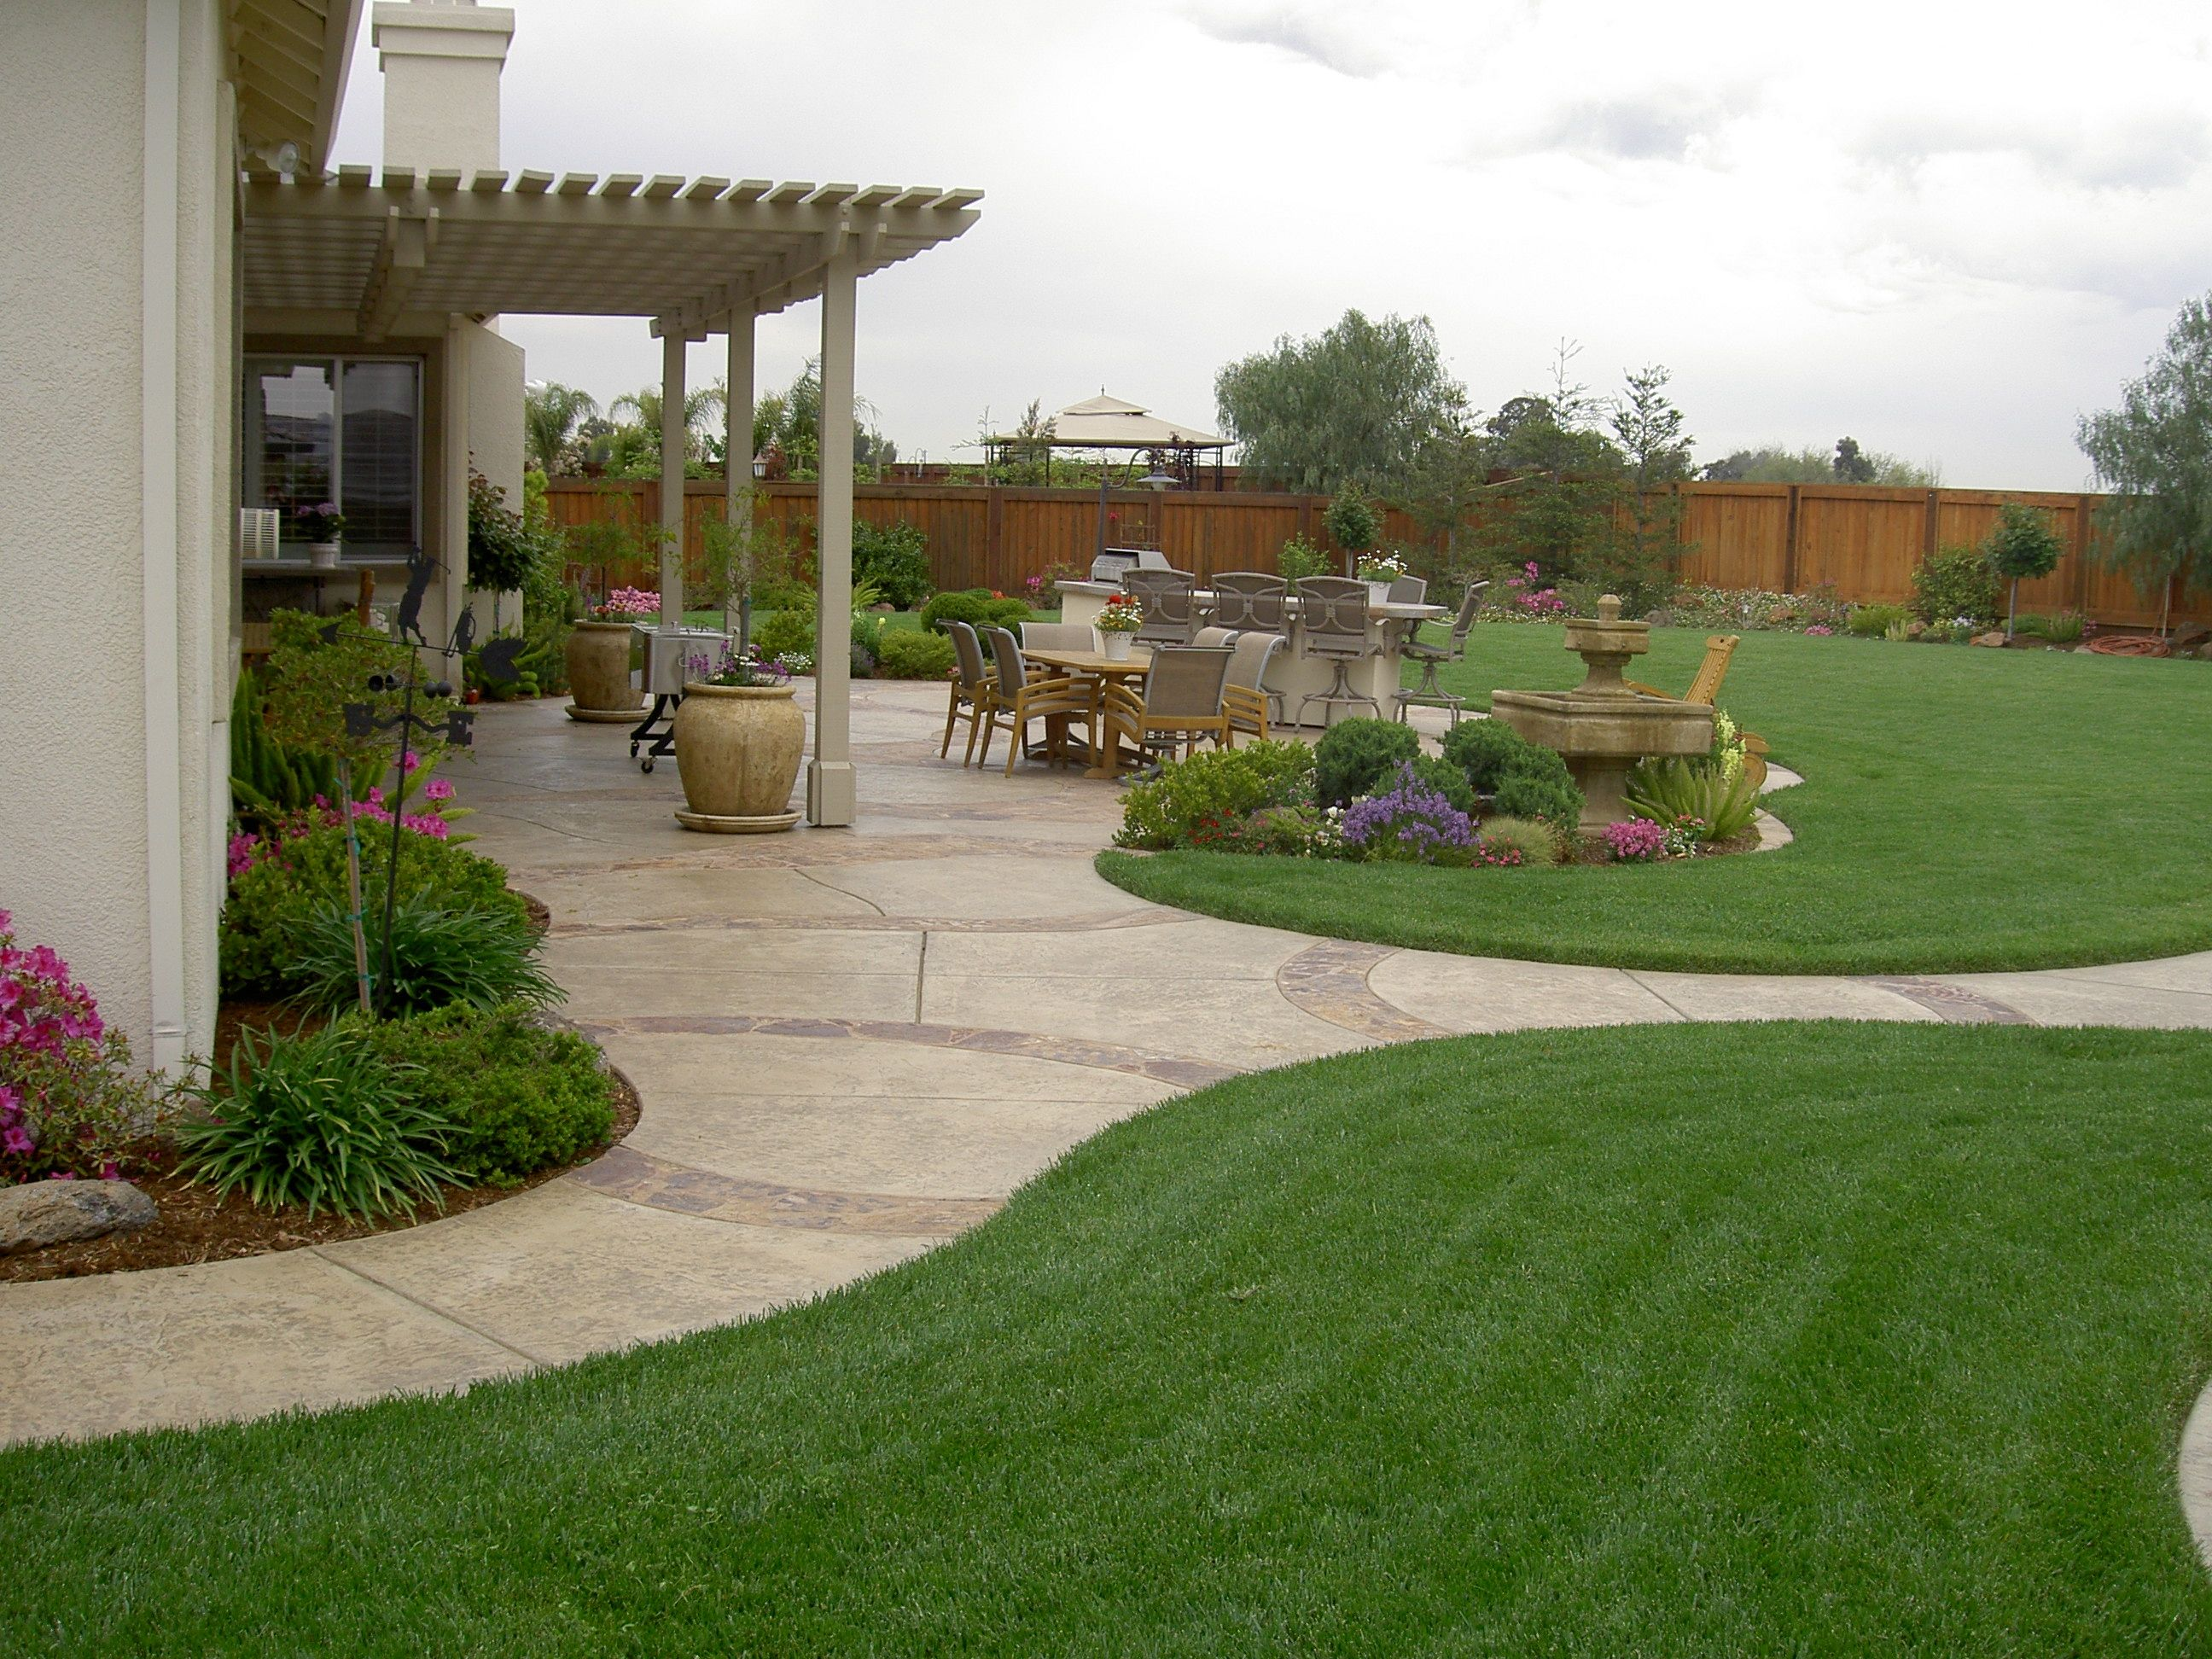 landscape design designs landscaping photos backyard designs landscaping photos - Backyard Design Landscaping